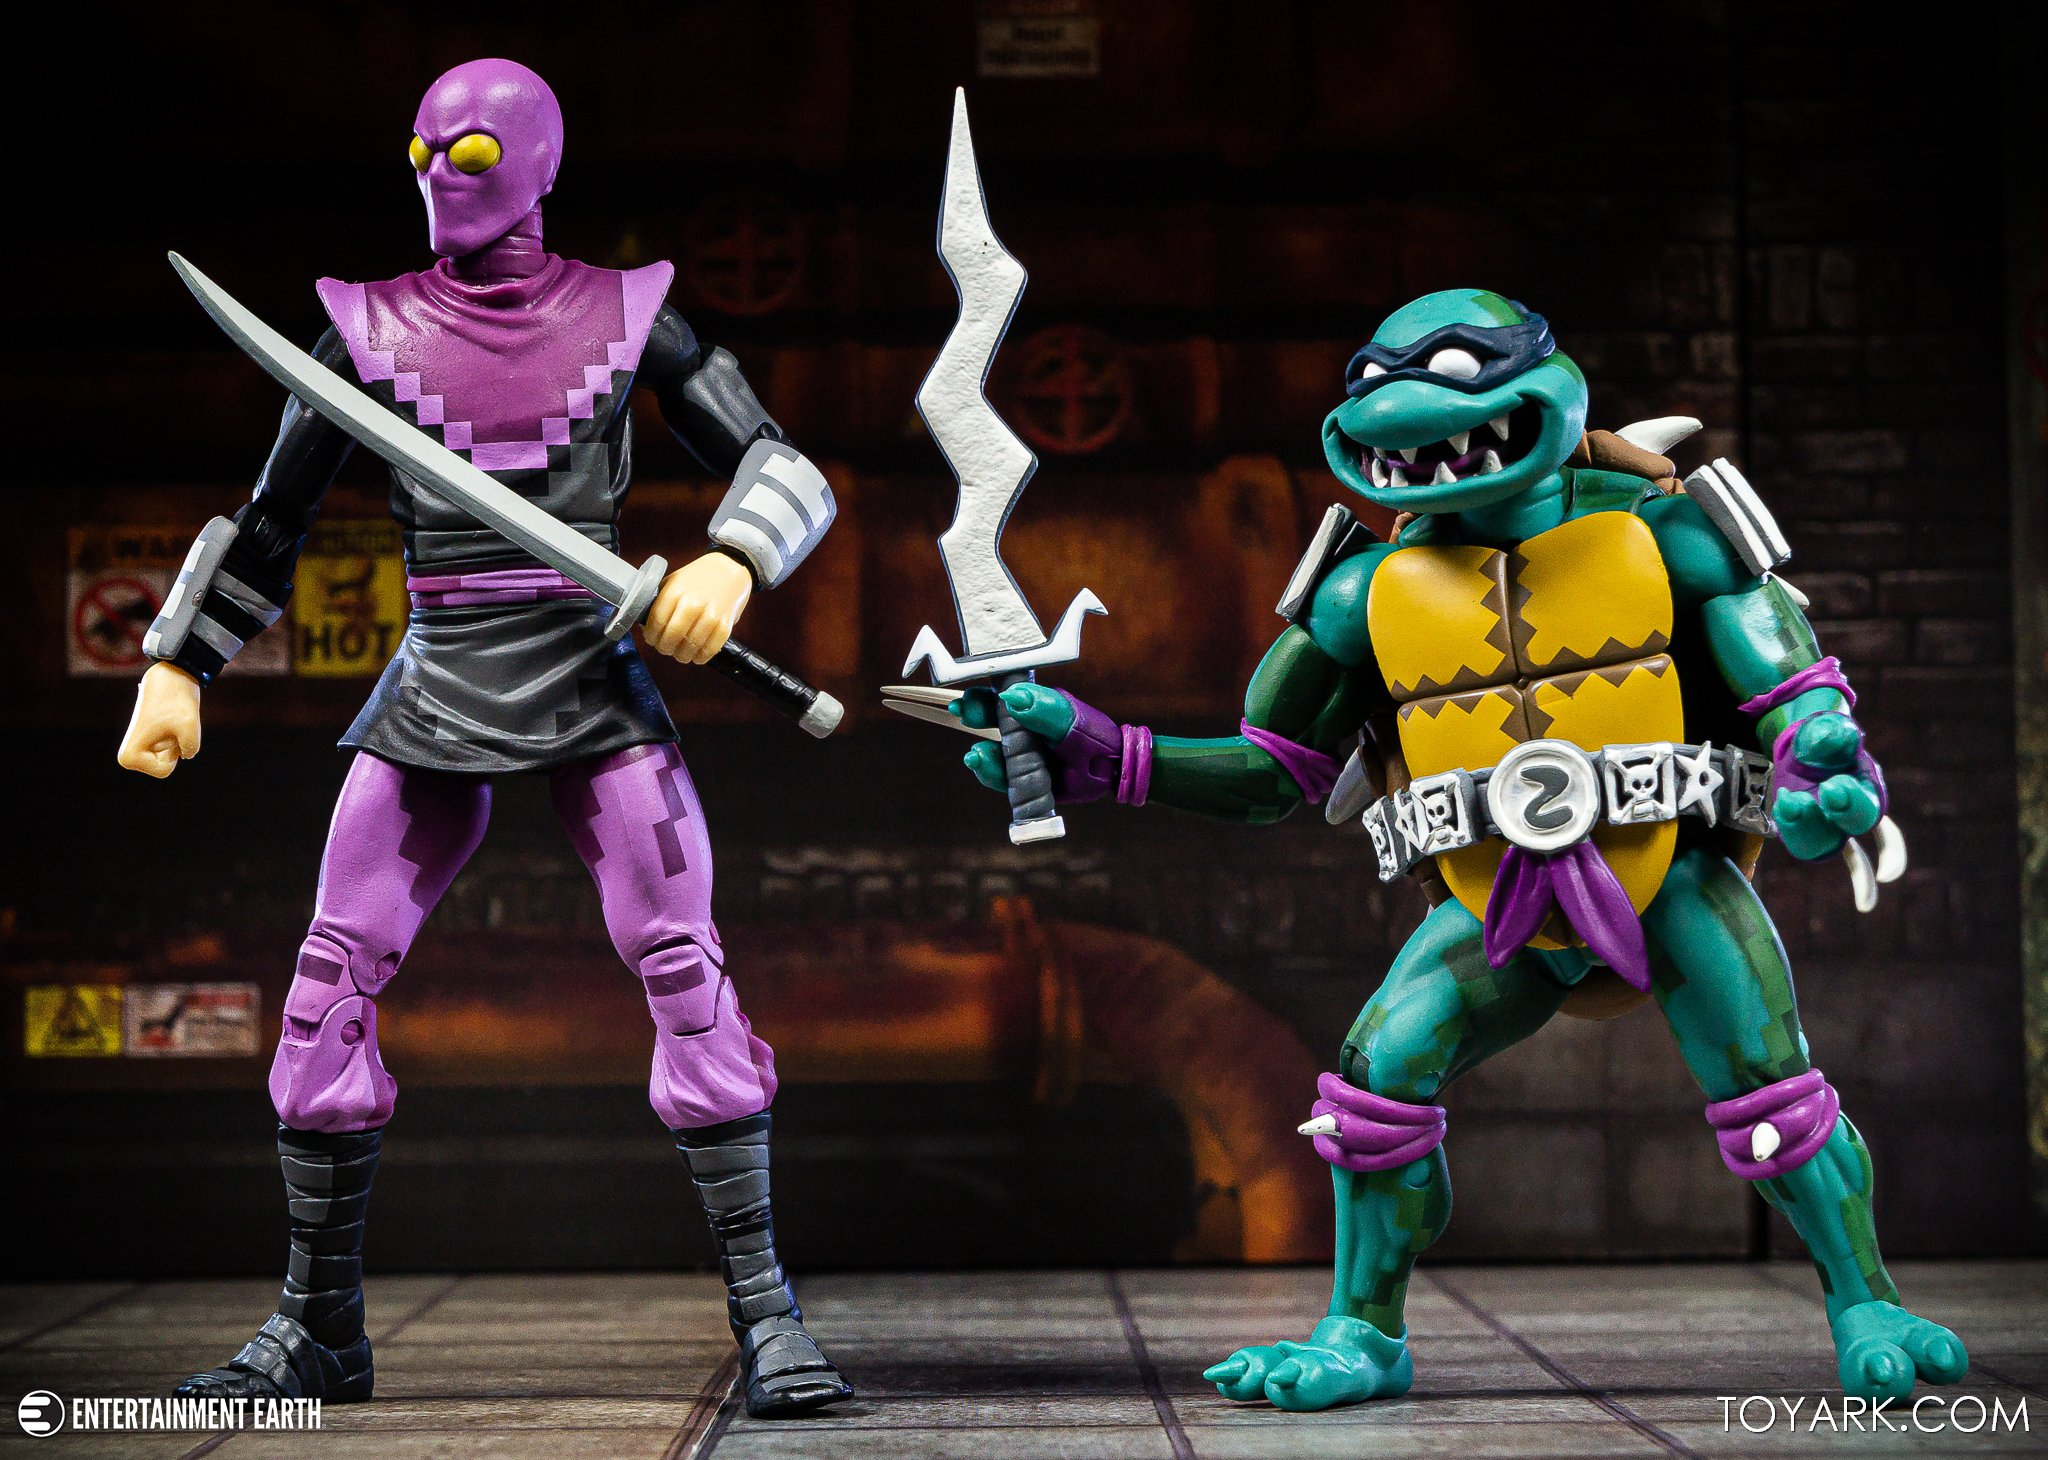 https://news.toyark.com/wp-content/uploads/sites/4/2020/06/NECA-TMNT-Turtles-In-Time-S1-049.jpg